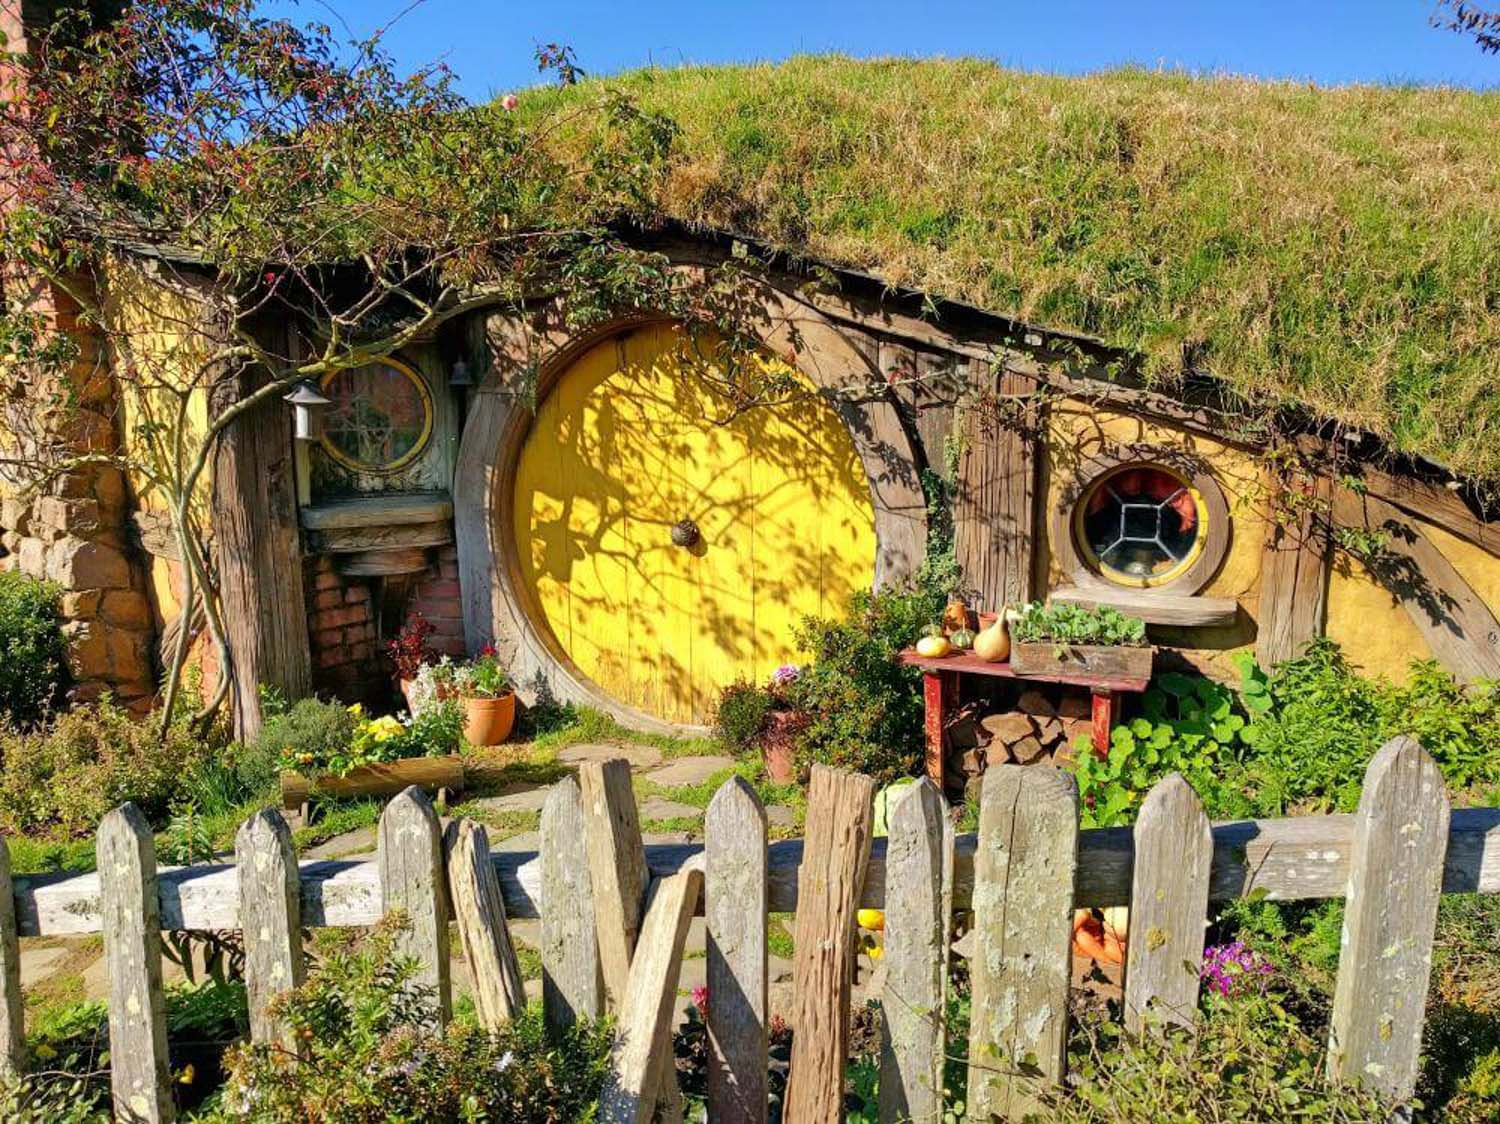 The Hobbiton Movie set - a day trip from Auckland